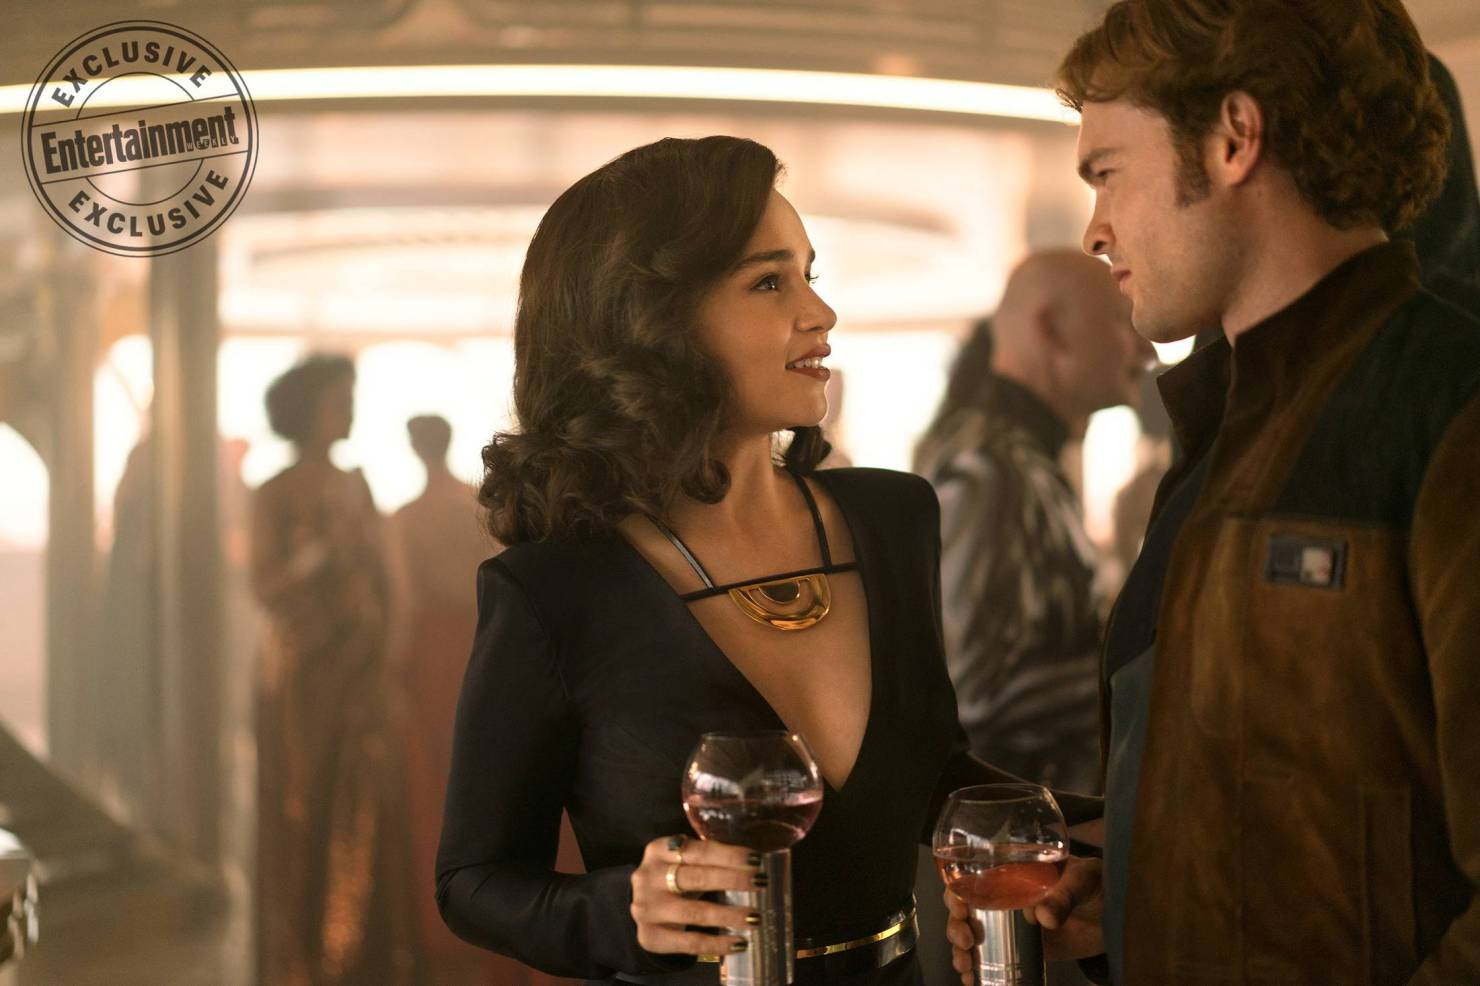 solo-images-4